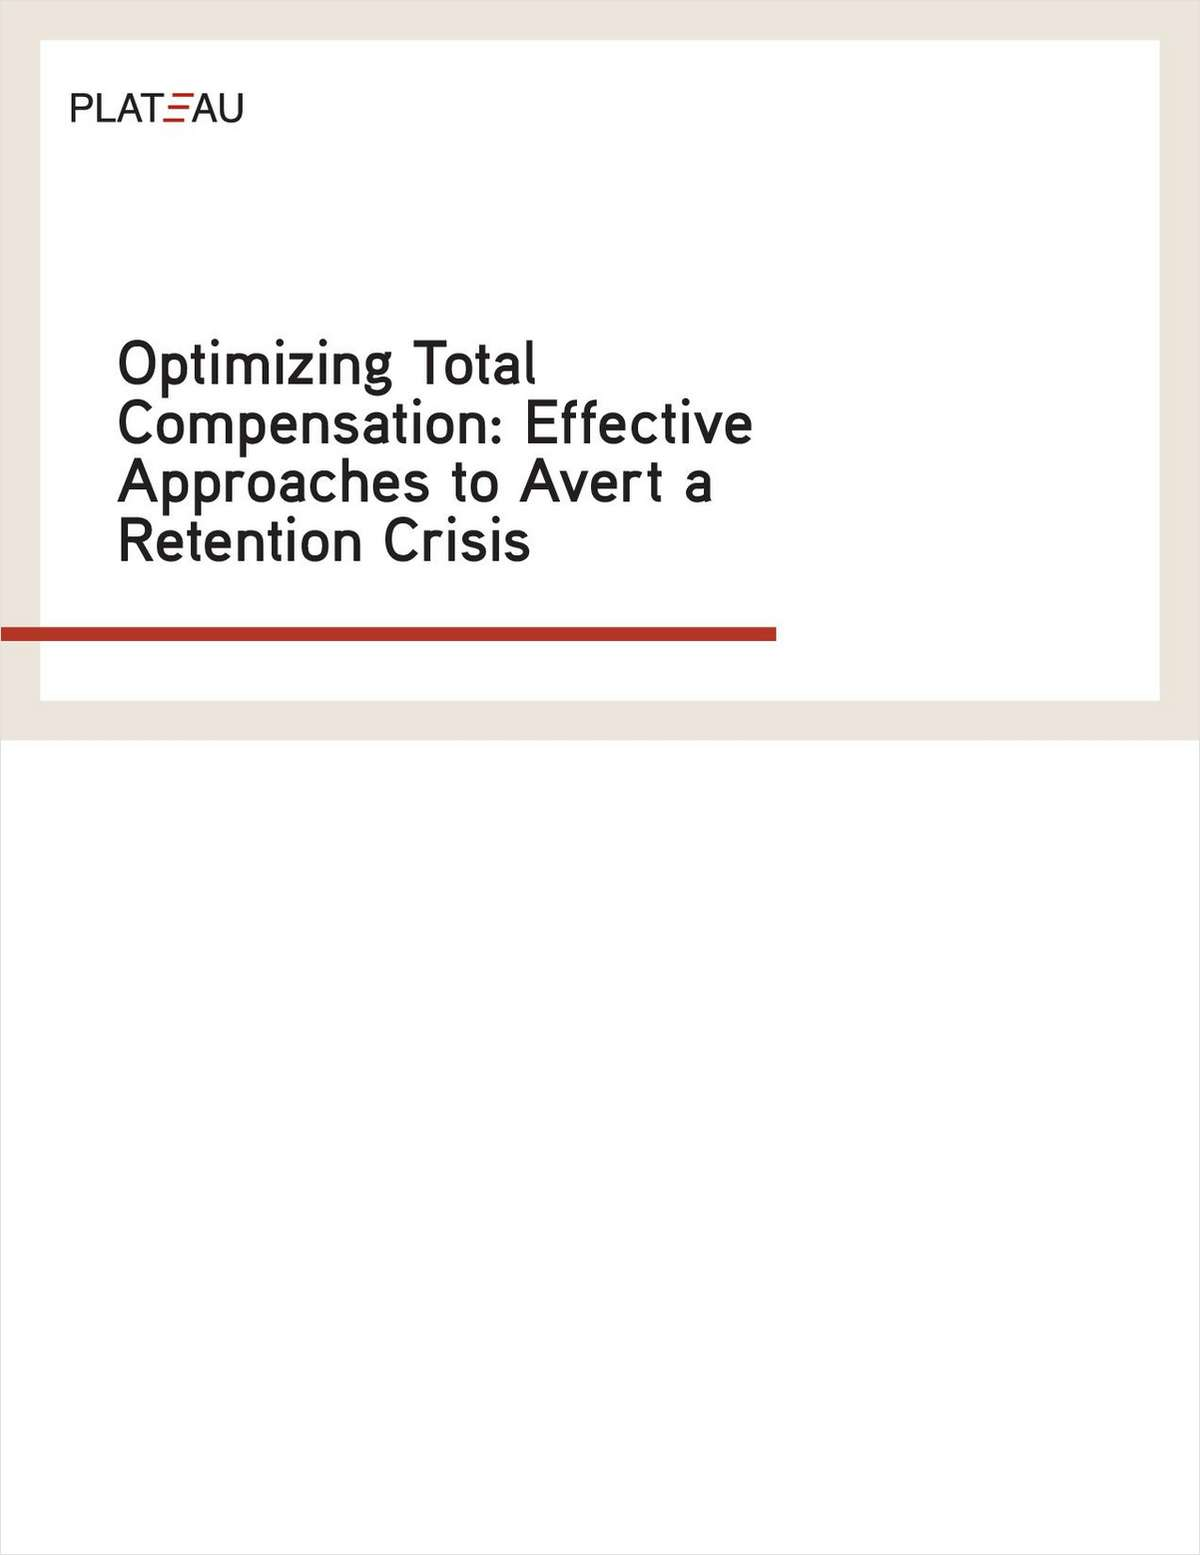 Optimizing Total Compensation: Effective Approaches to Avert a Retention Crisis